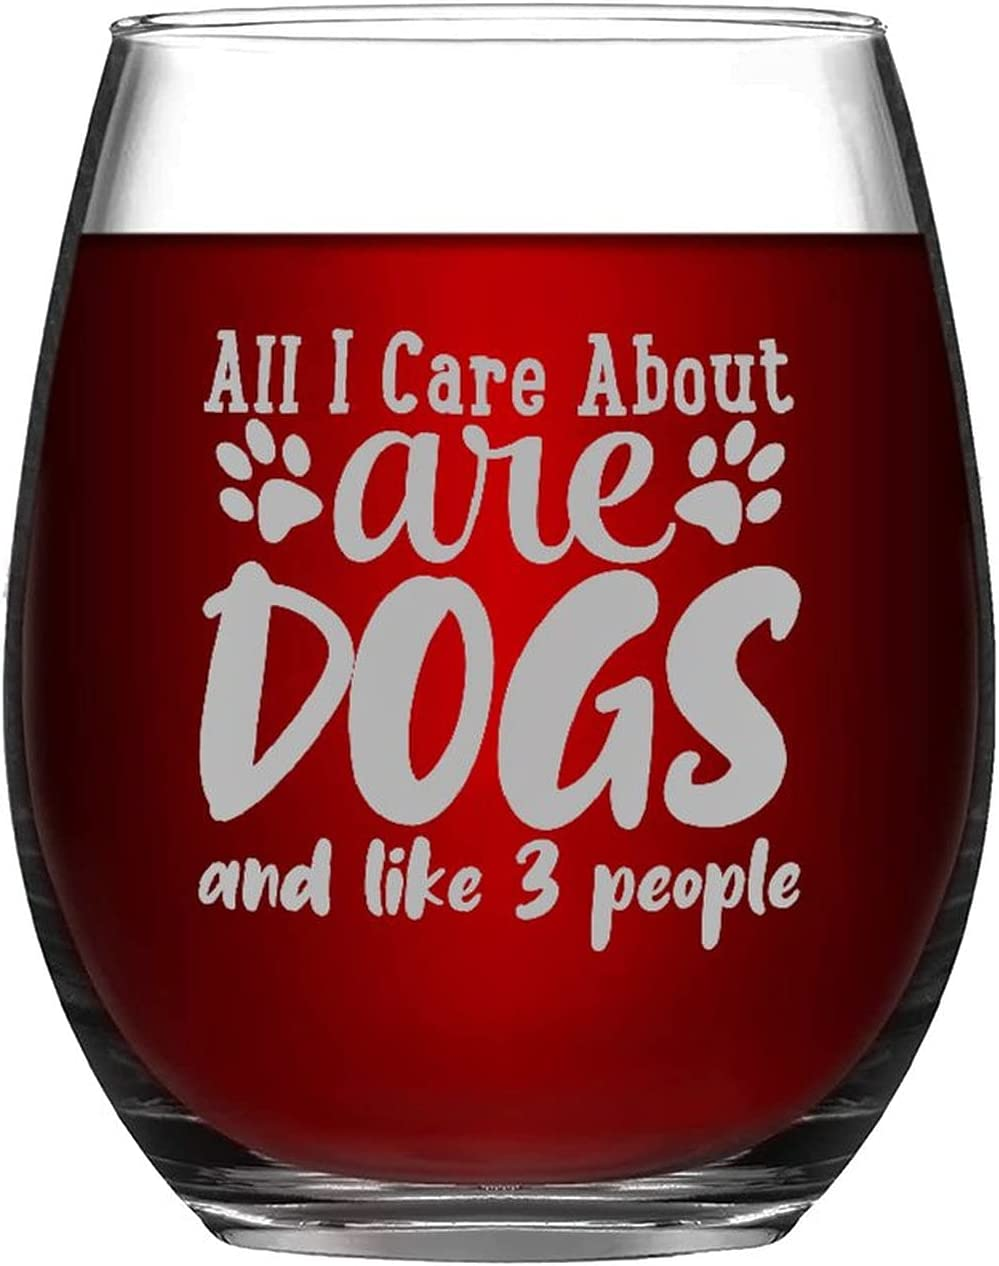 Funny Stemless Wine Glass All I Care New Orleans Mall And Dogs About Like Nashville-Davidson Mall Peo Are